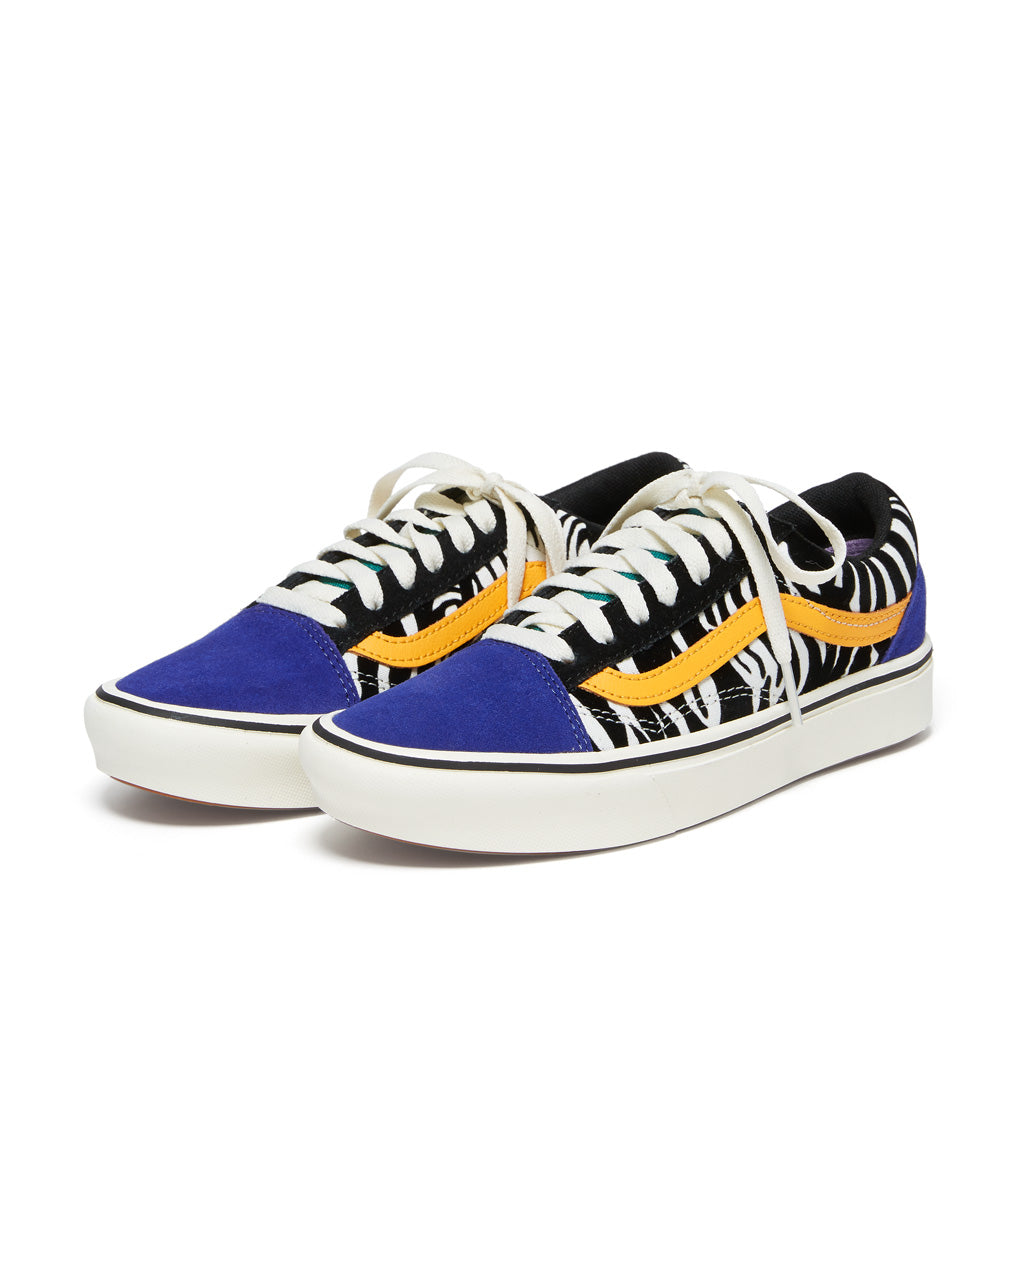 Comfycush Old Skool - Zebra by vans - shoes - ban.do